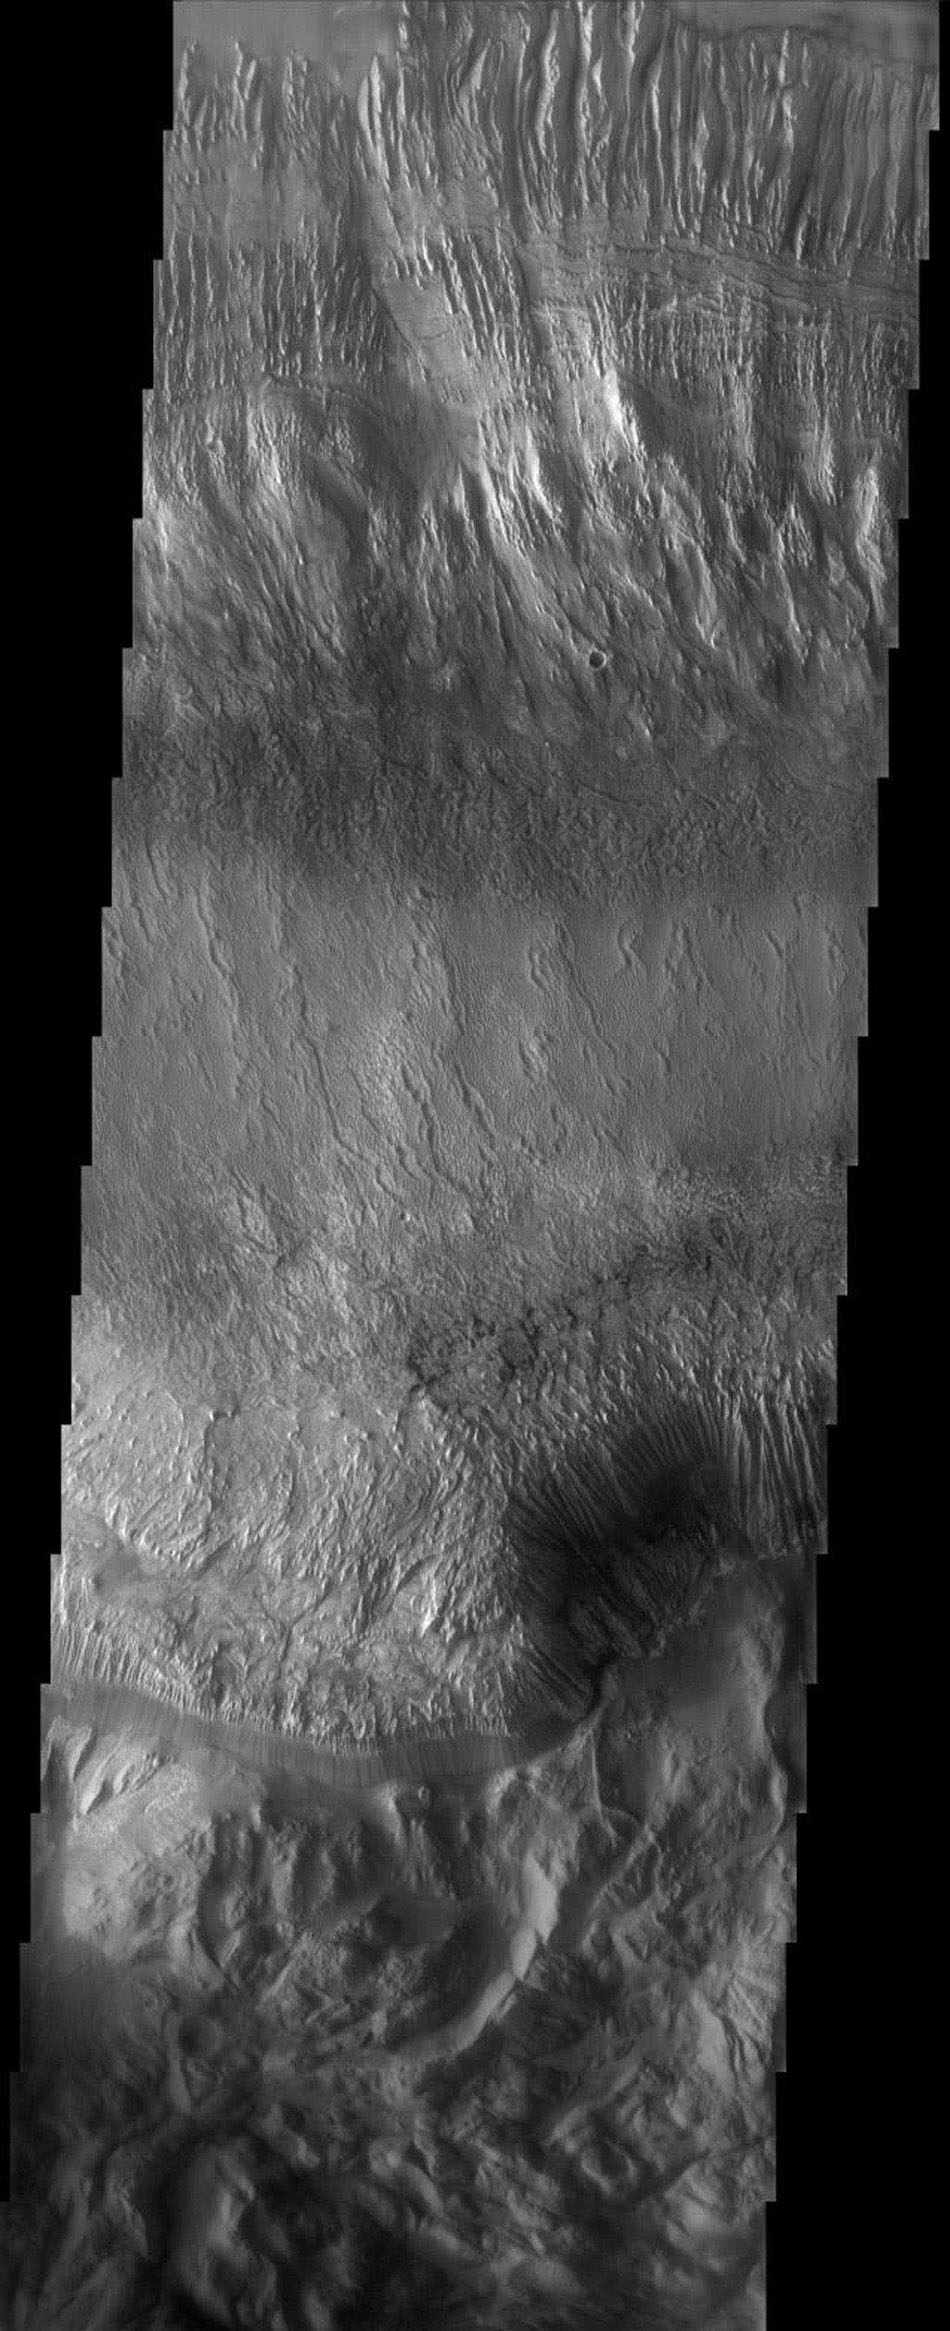 This image taken by NASA's 2001 Mars Odyssey shows Hebes Chasma, the northernmost canyon of Mars' vast Valles Marineris system.